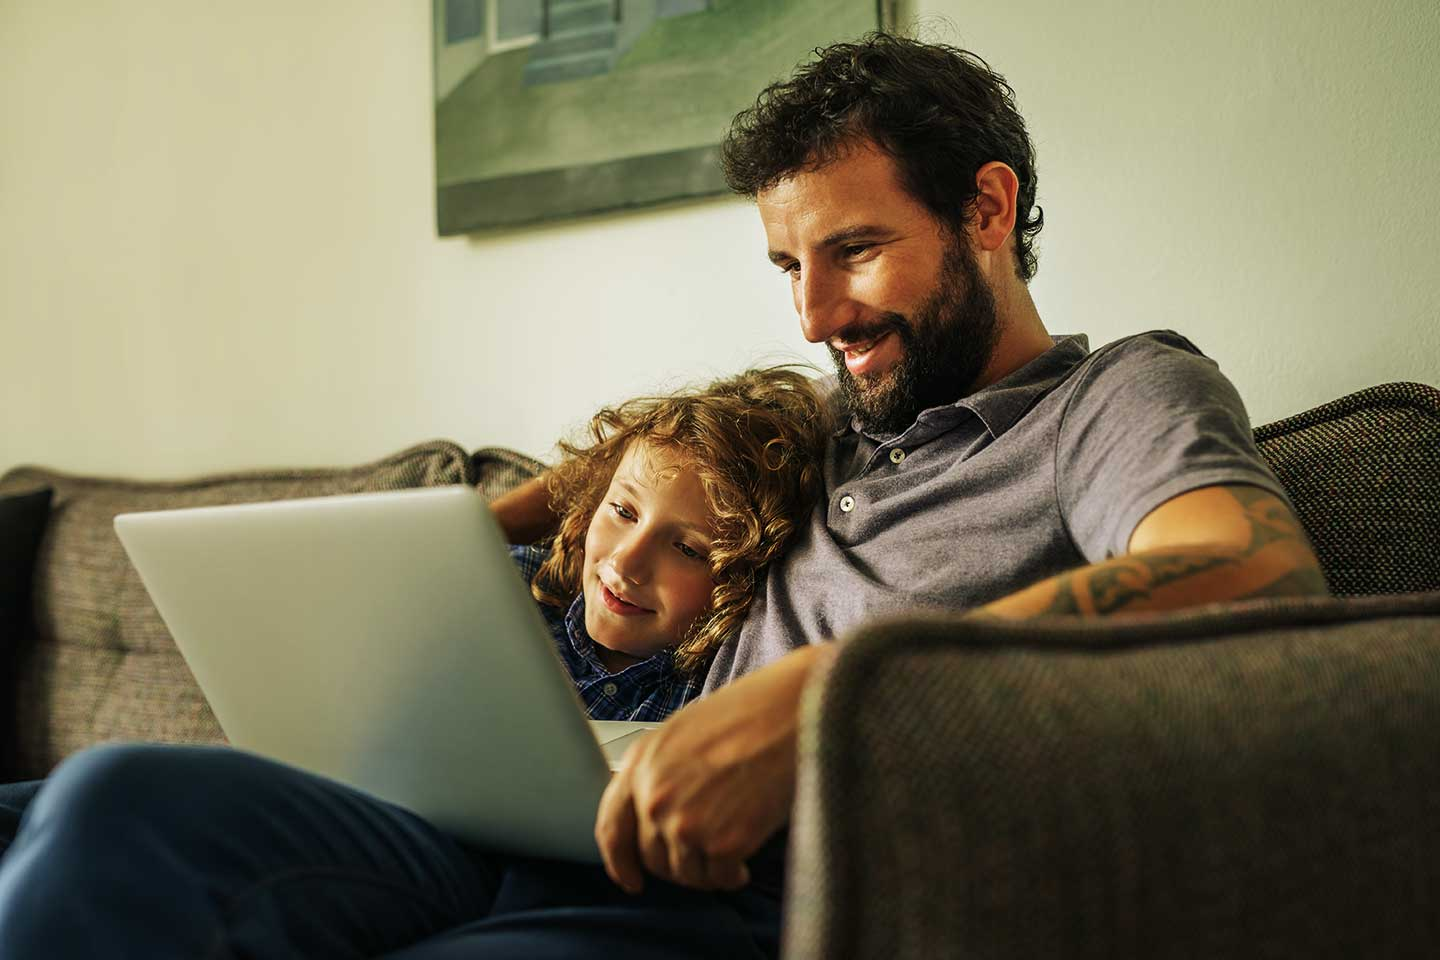 Photo of father and son streaming video on laptop